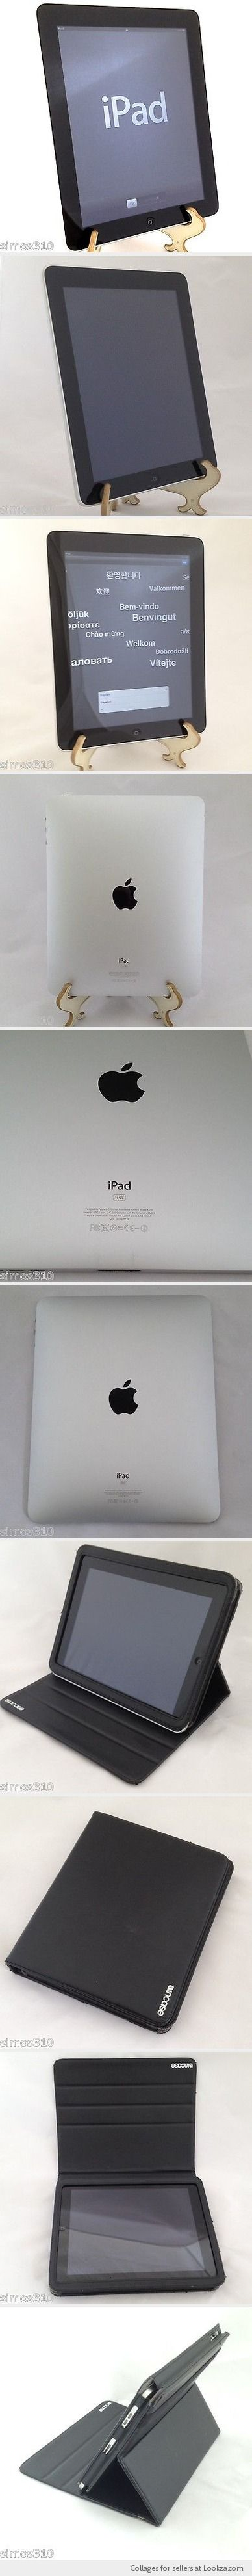 Apple iPad 1st Generation 16GB  Wi-Fi Excellent Condition (MB292LL/A) - Found on Lookza.com